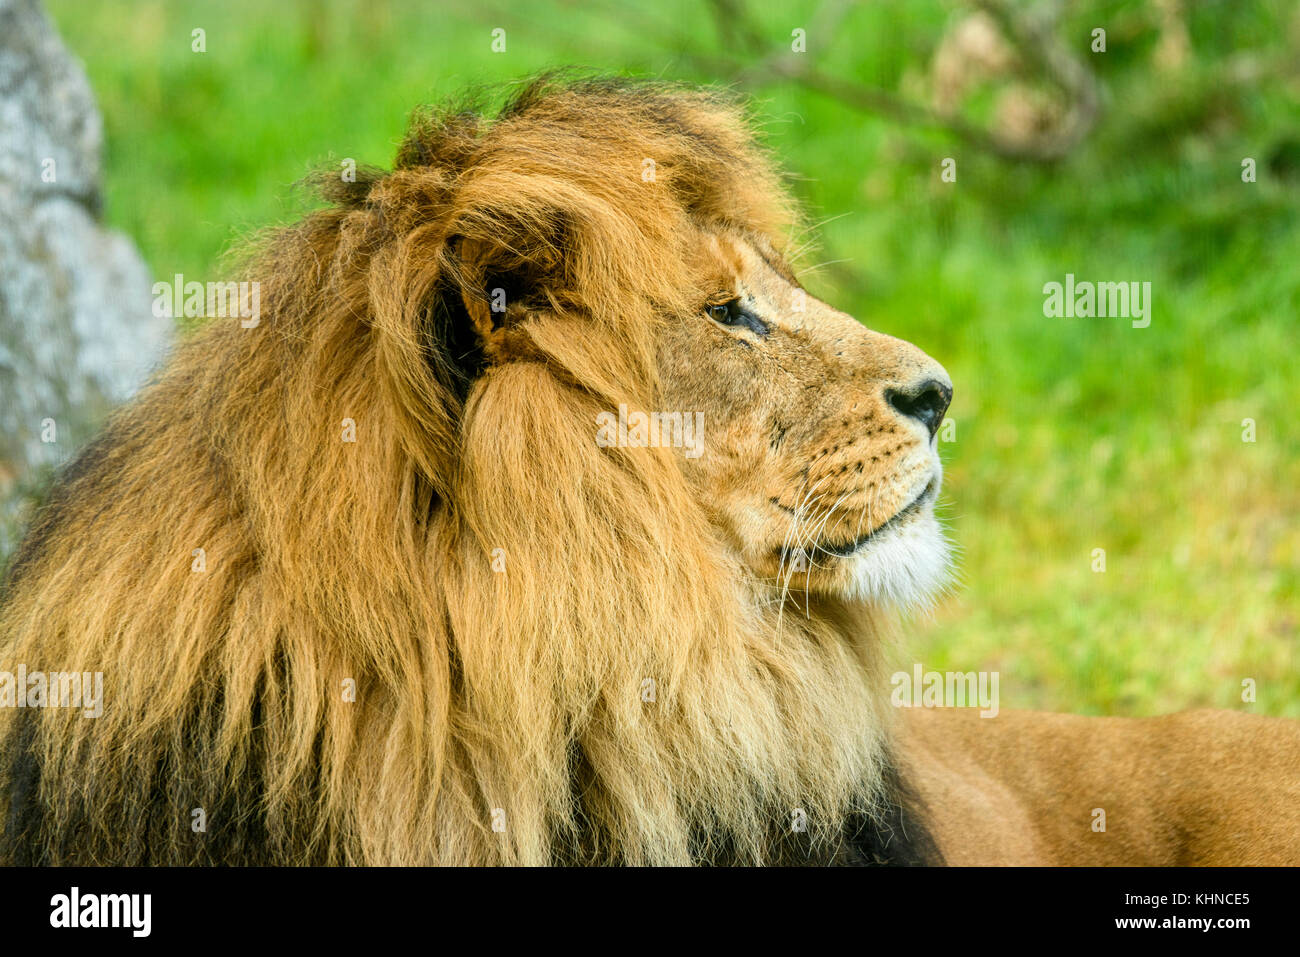 Male Lion with a large mane lying on a field with rocks and green grass - Stock Image